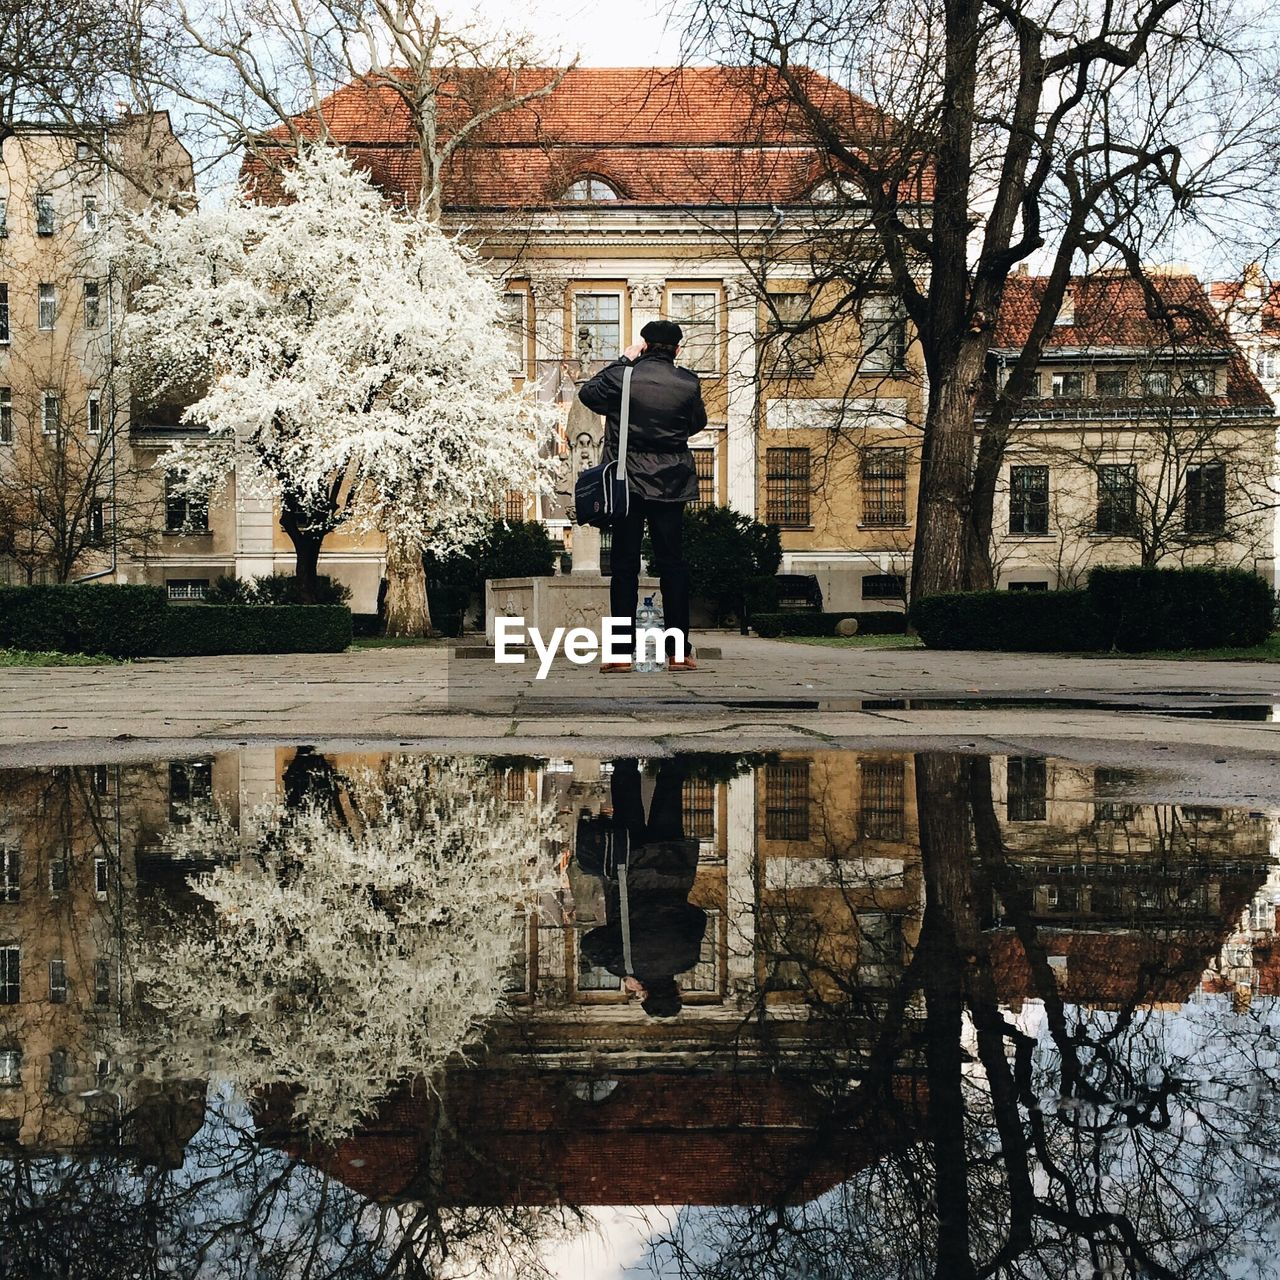 Reflection of man and buildings with trees in puddle